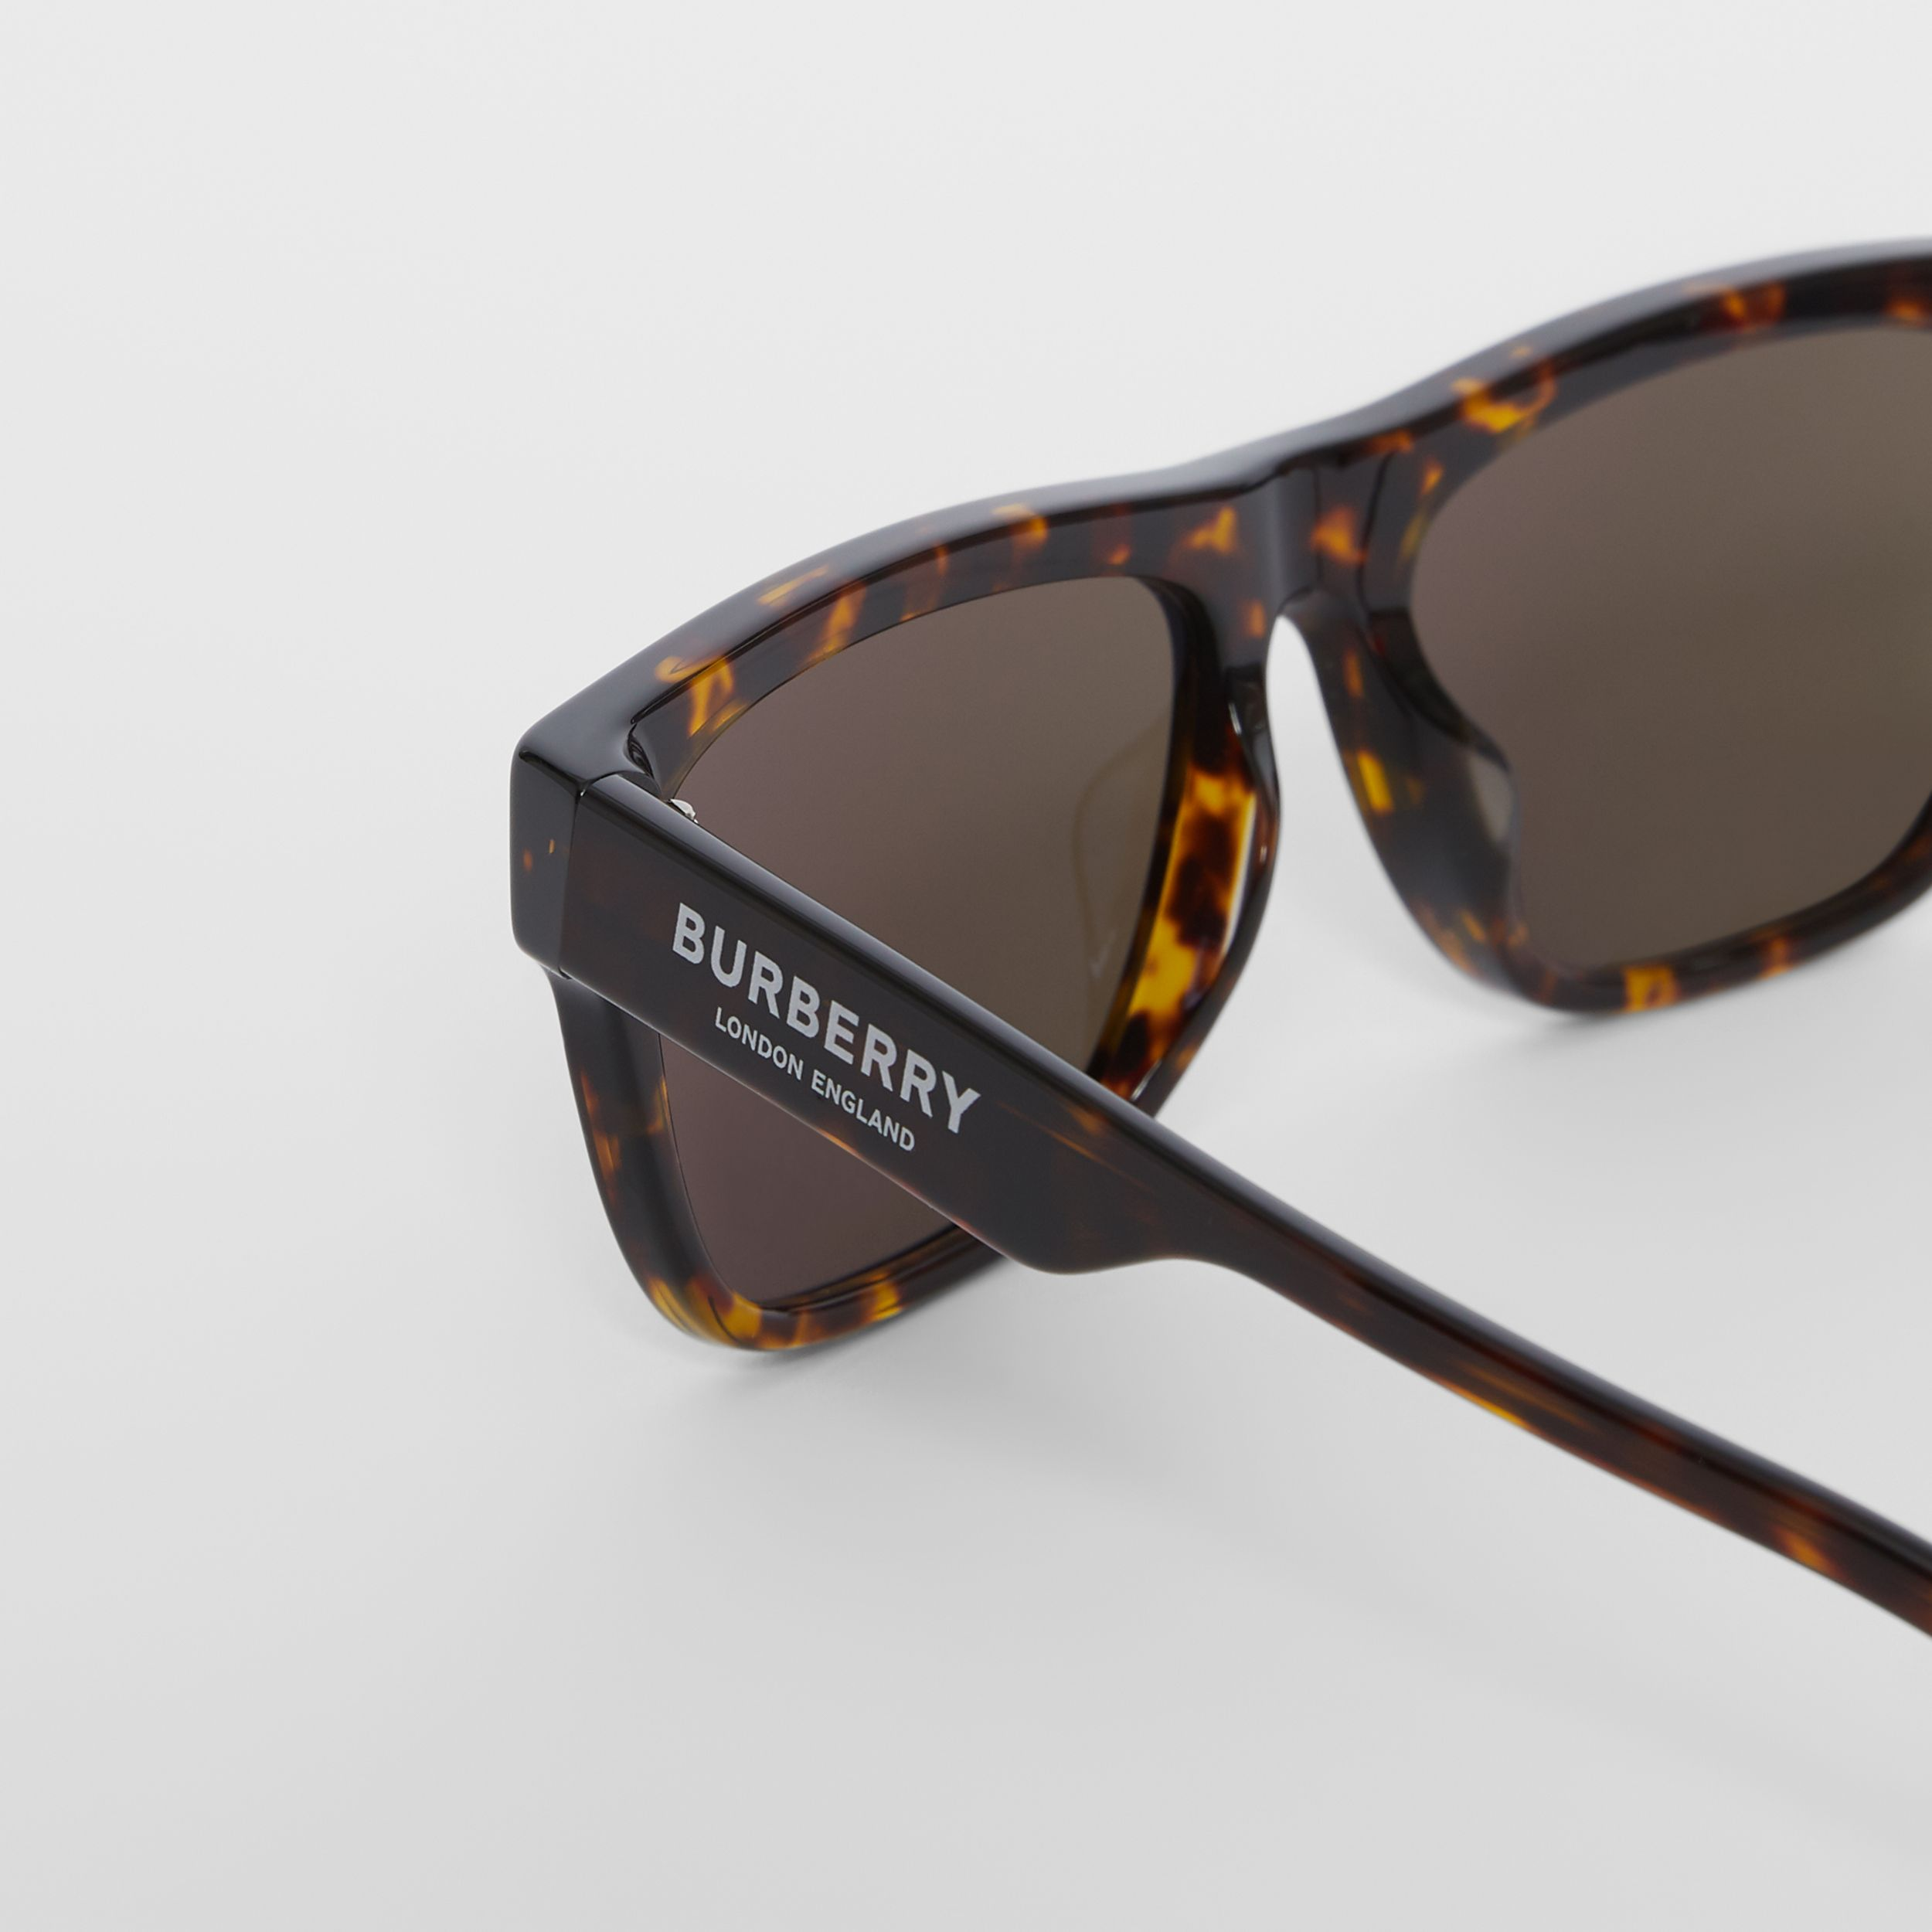 Square Frame Sunglasses in Tortoiseshell - Men | Burberry - 2